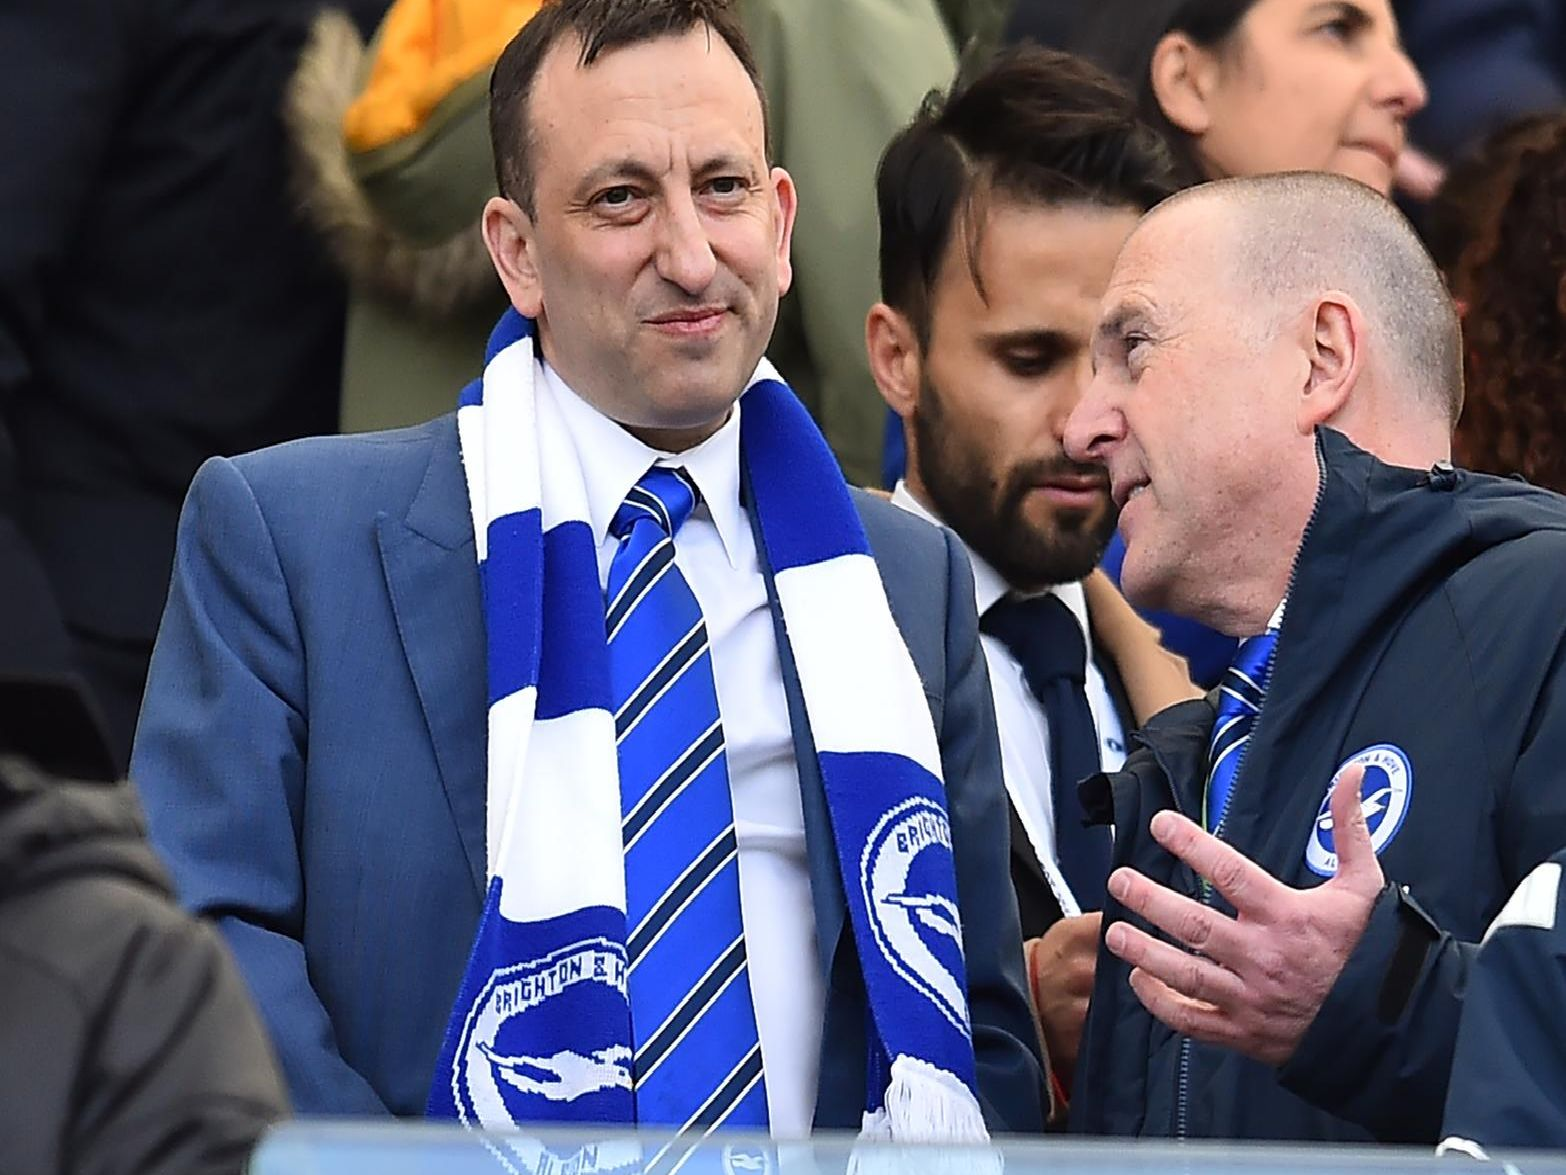 Brighton and Hove Albion are on the search for a new manager after sacking Chris Hughton on Monday.